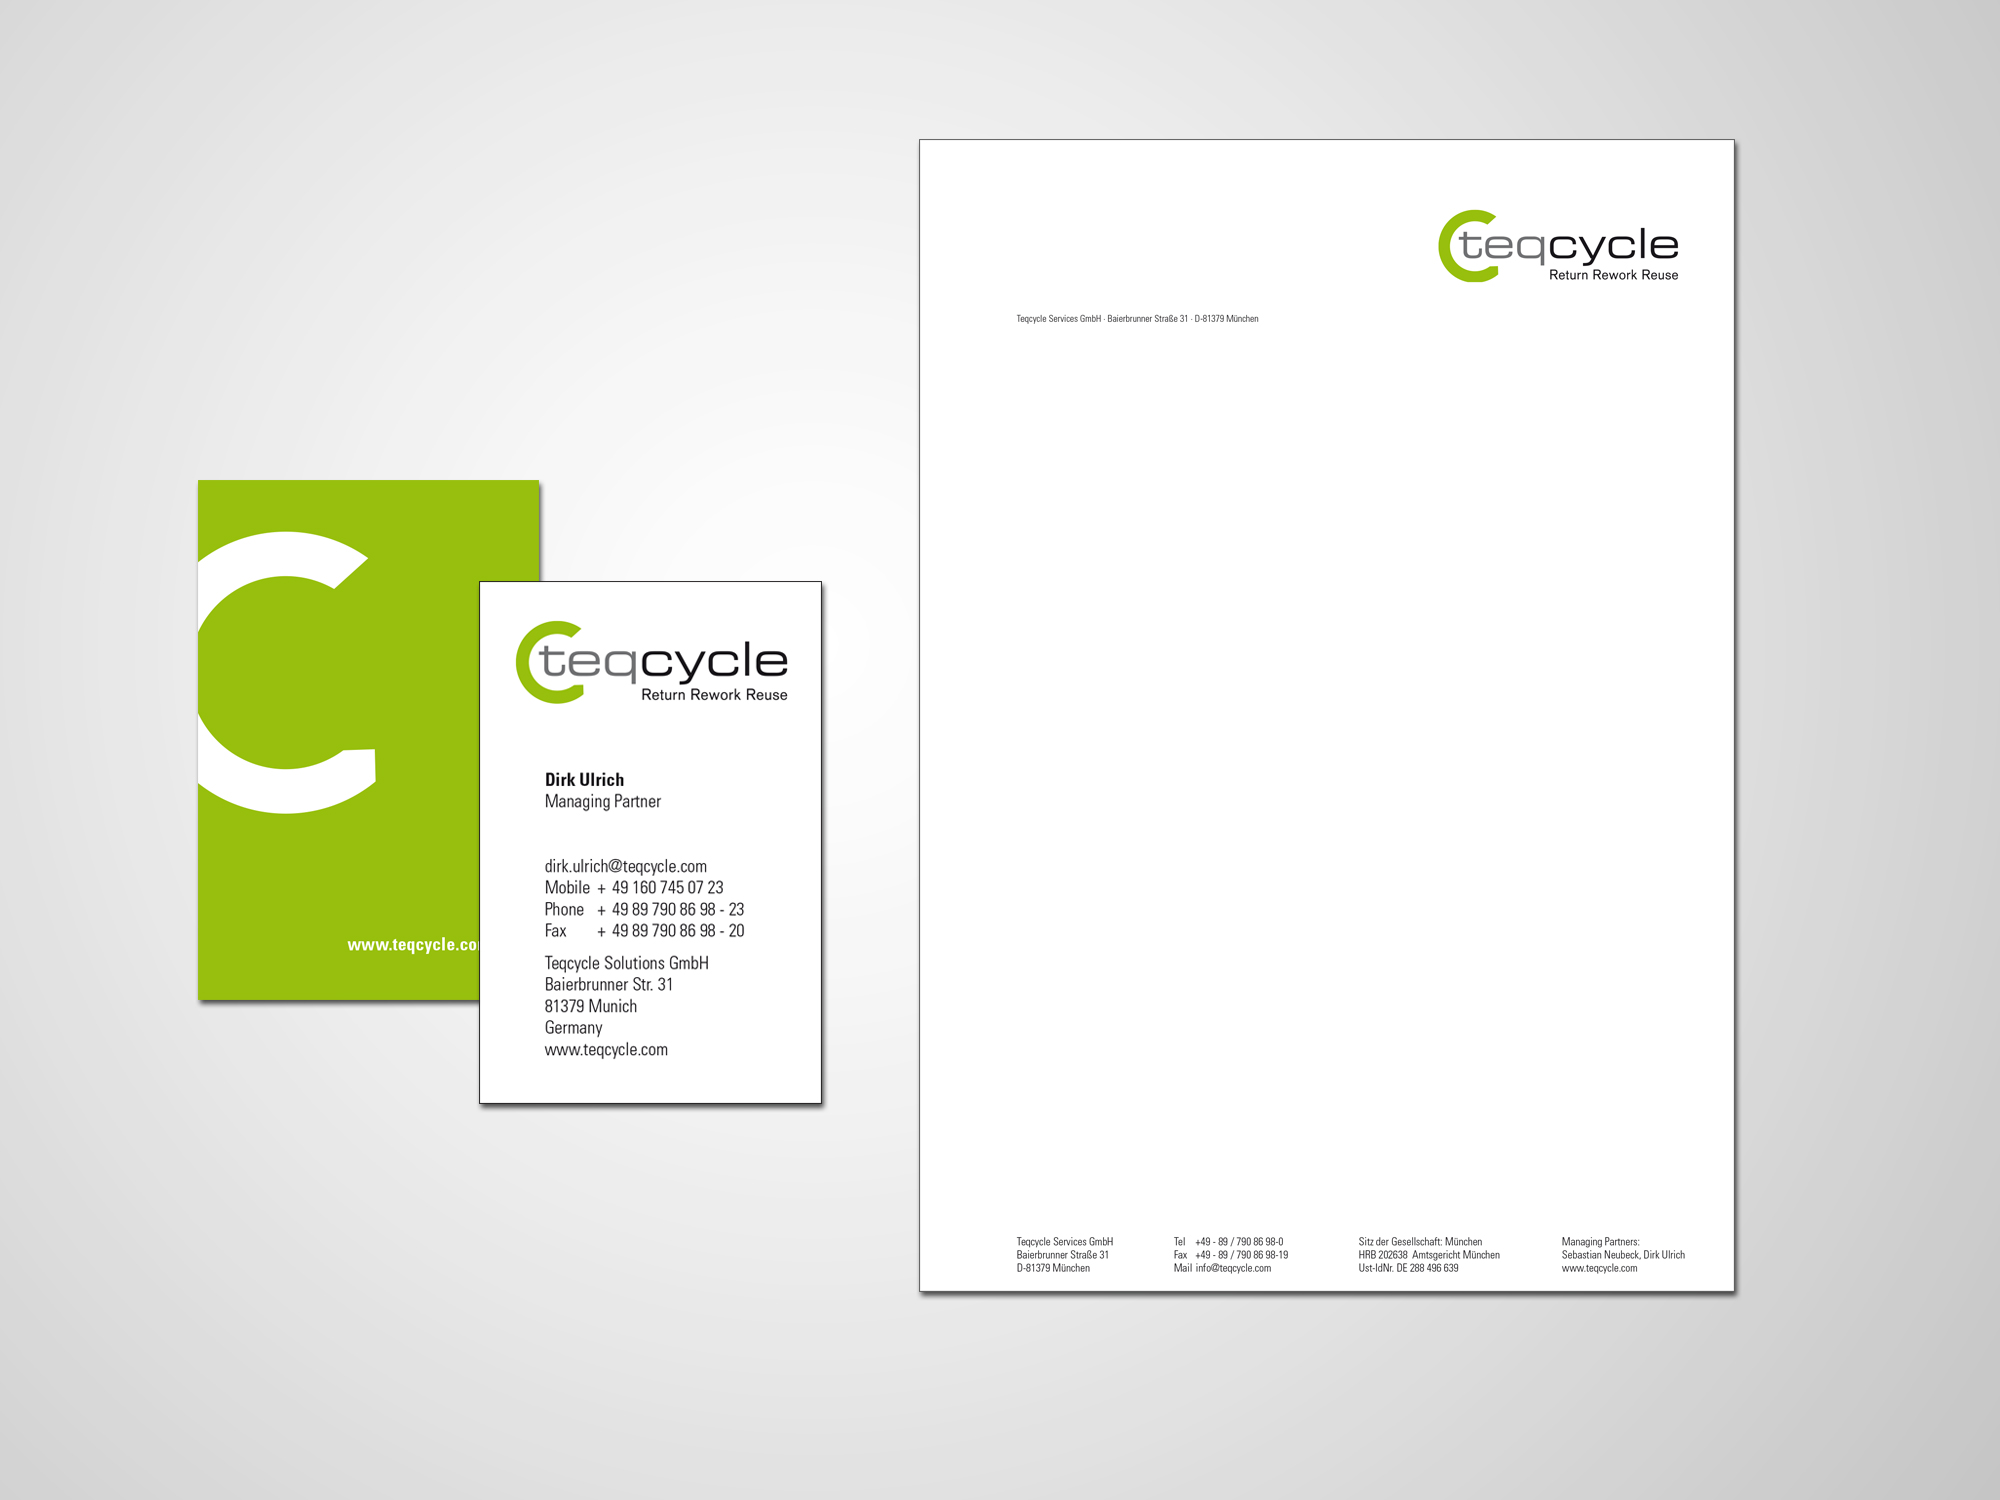 Corporate-Design-teqcycle-Briefausstattung